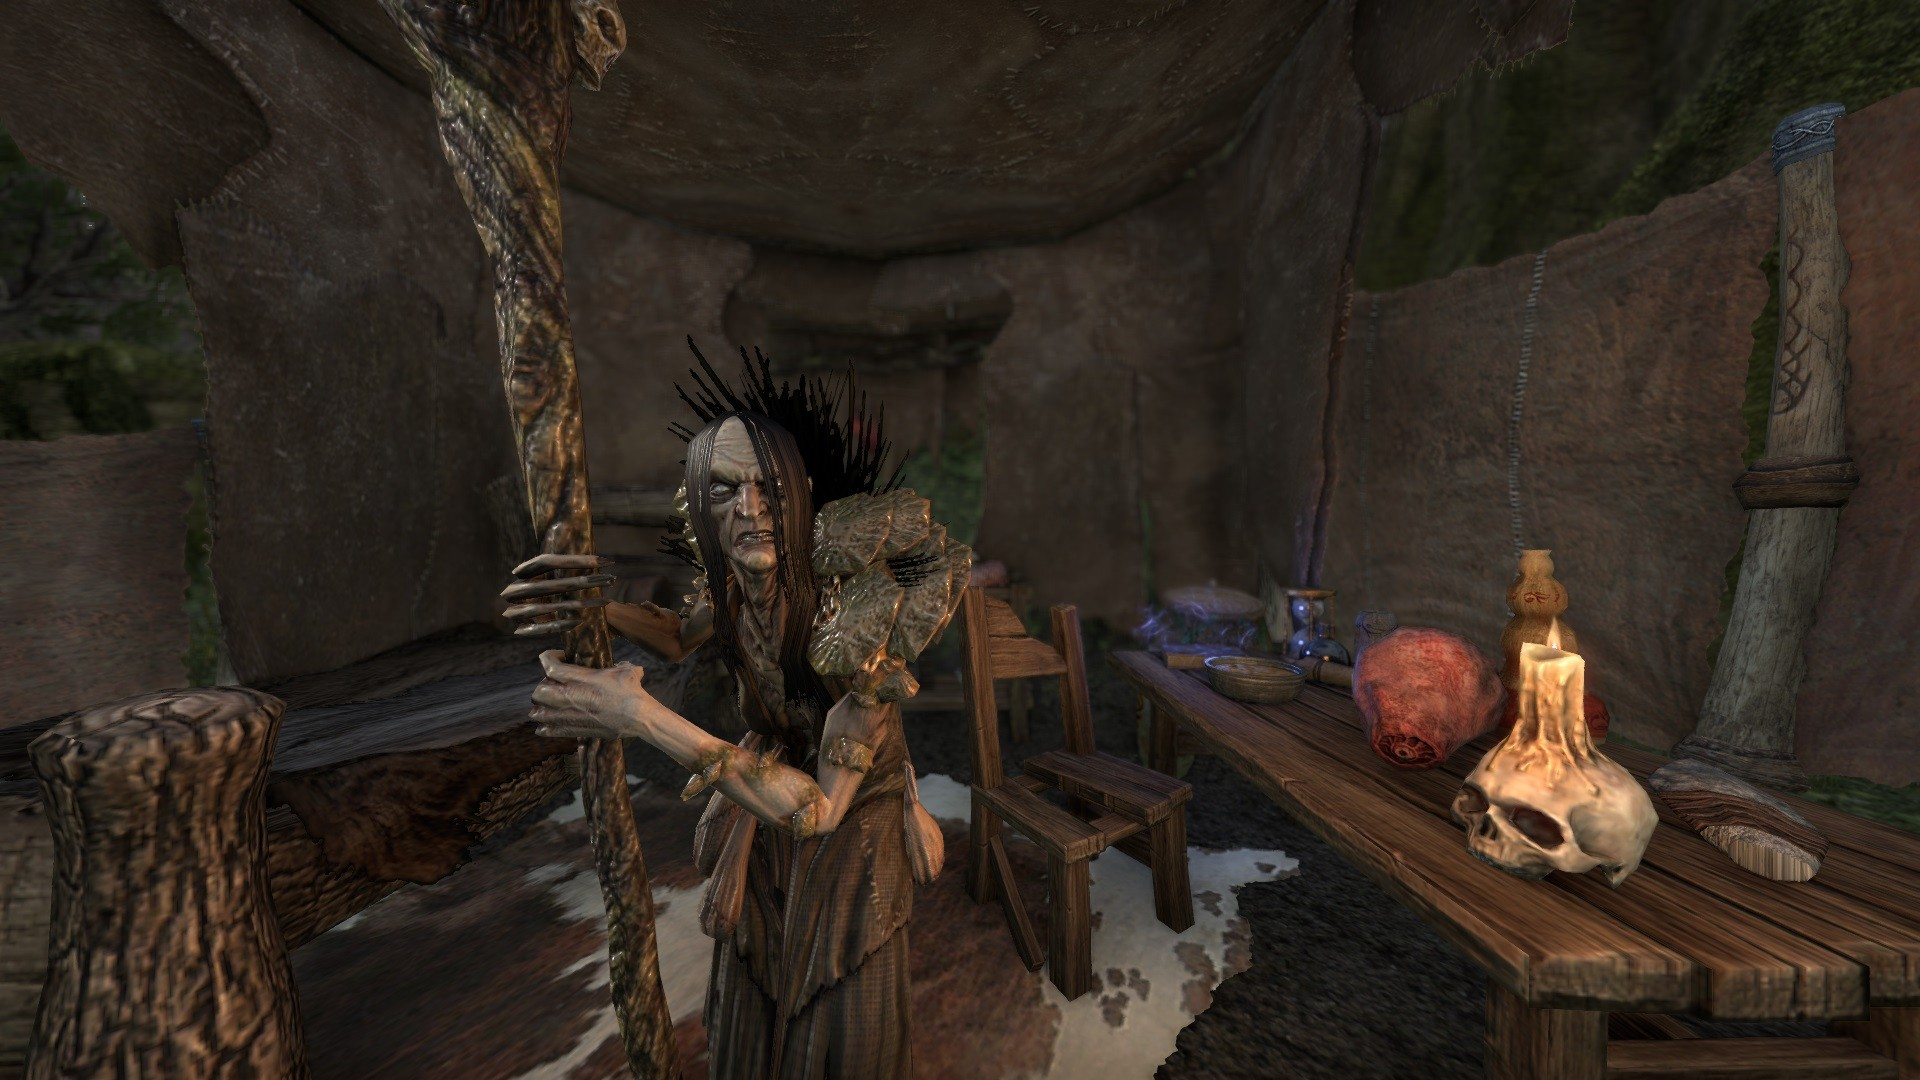 ESO can be very creepy...